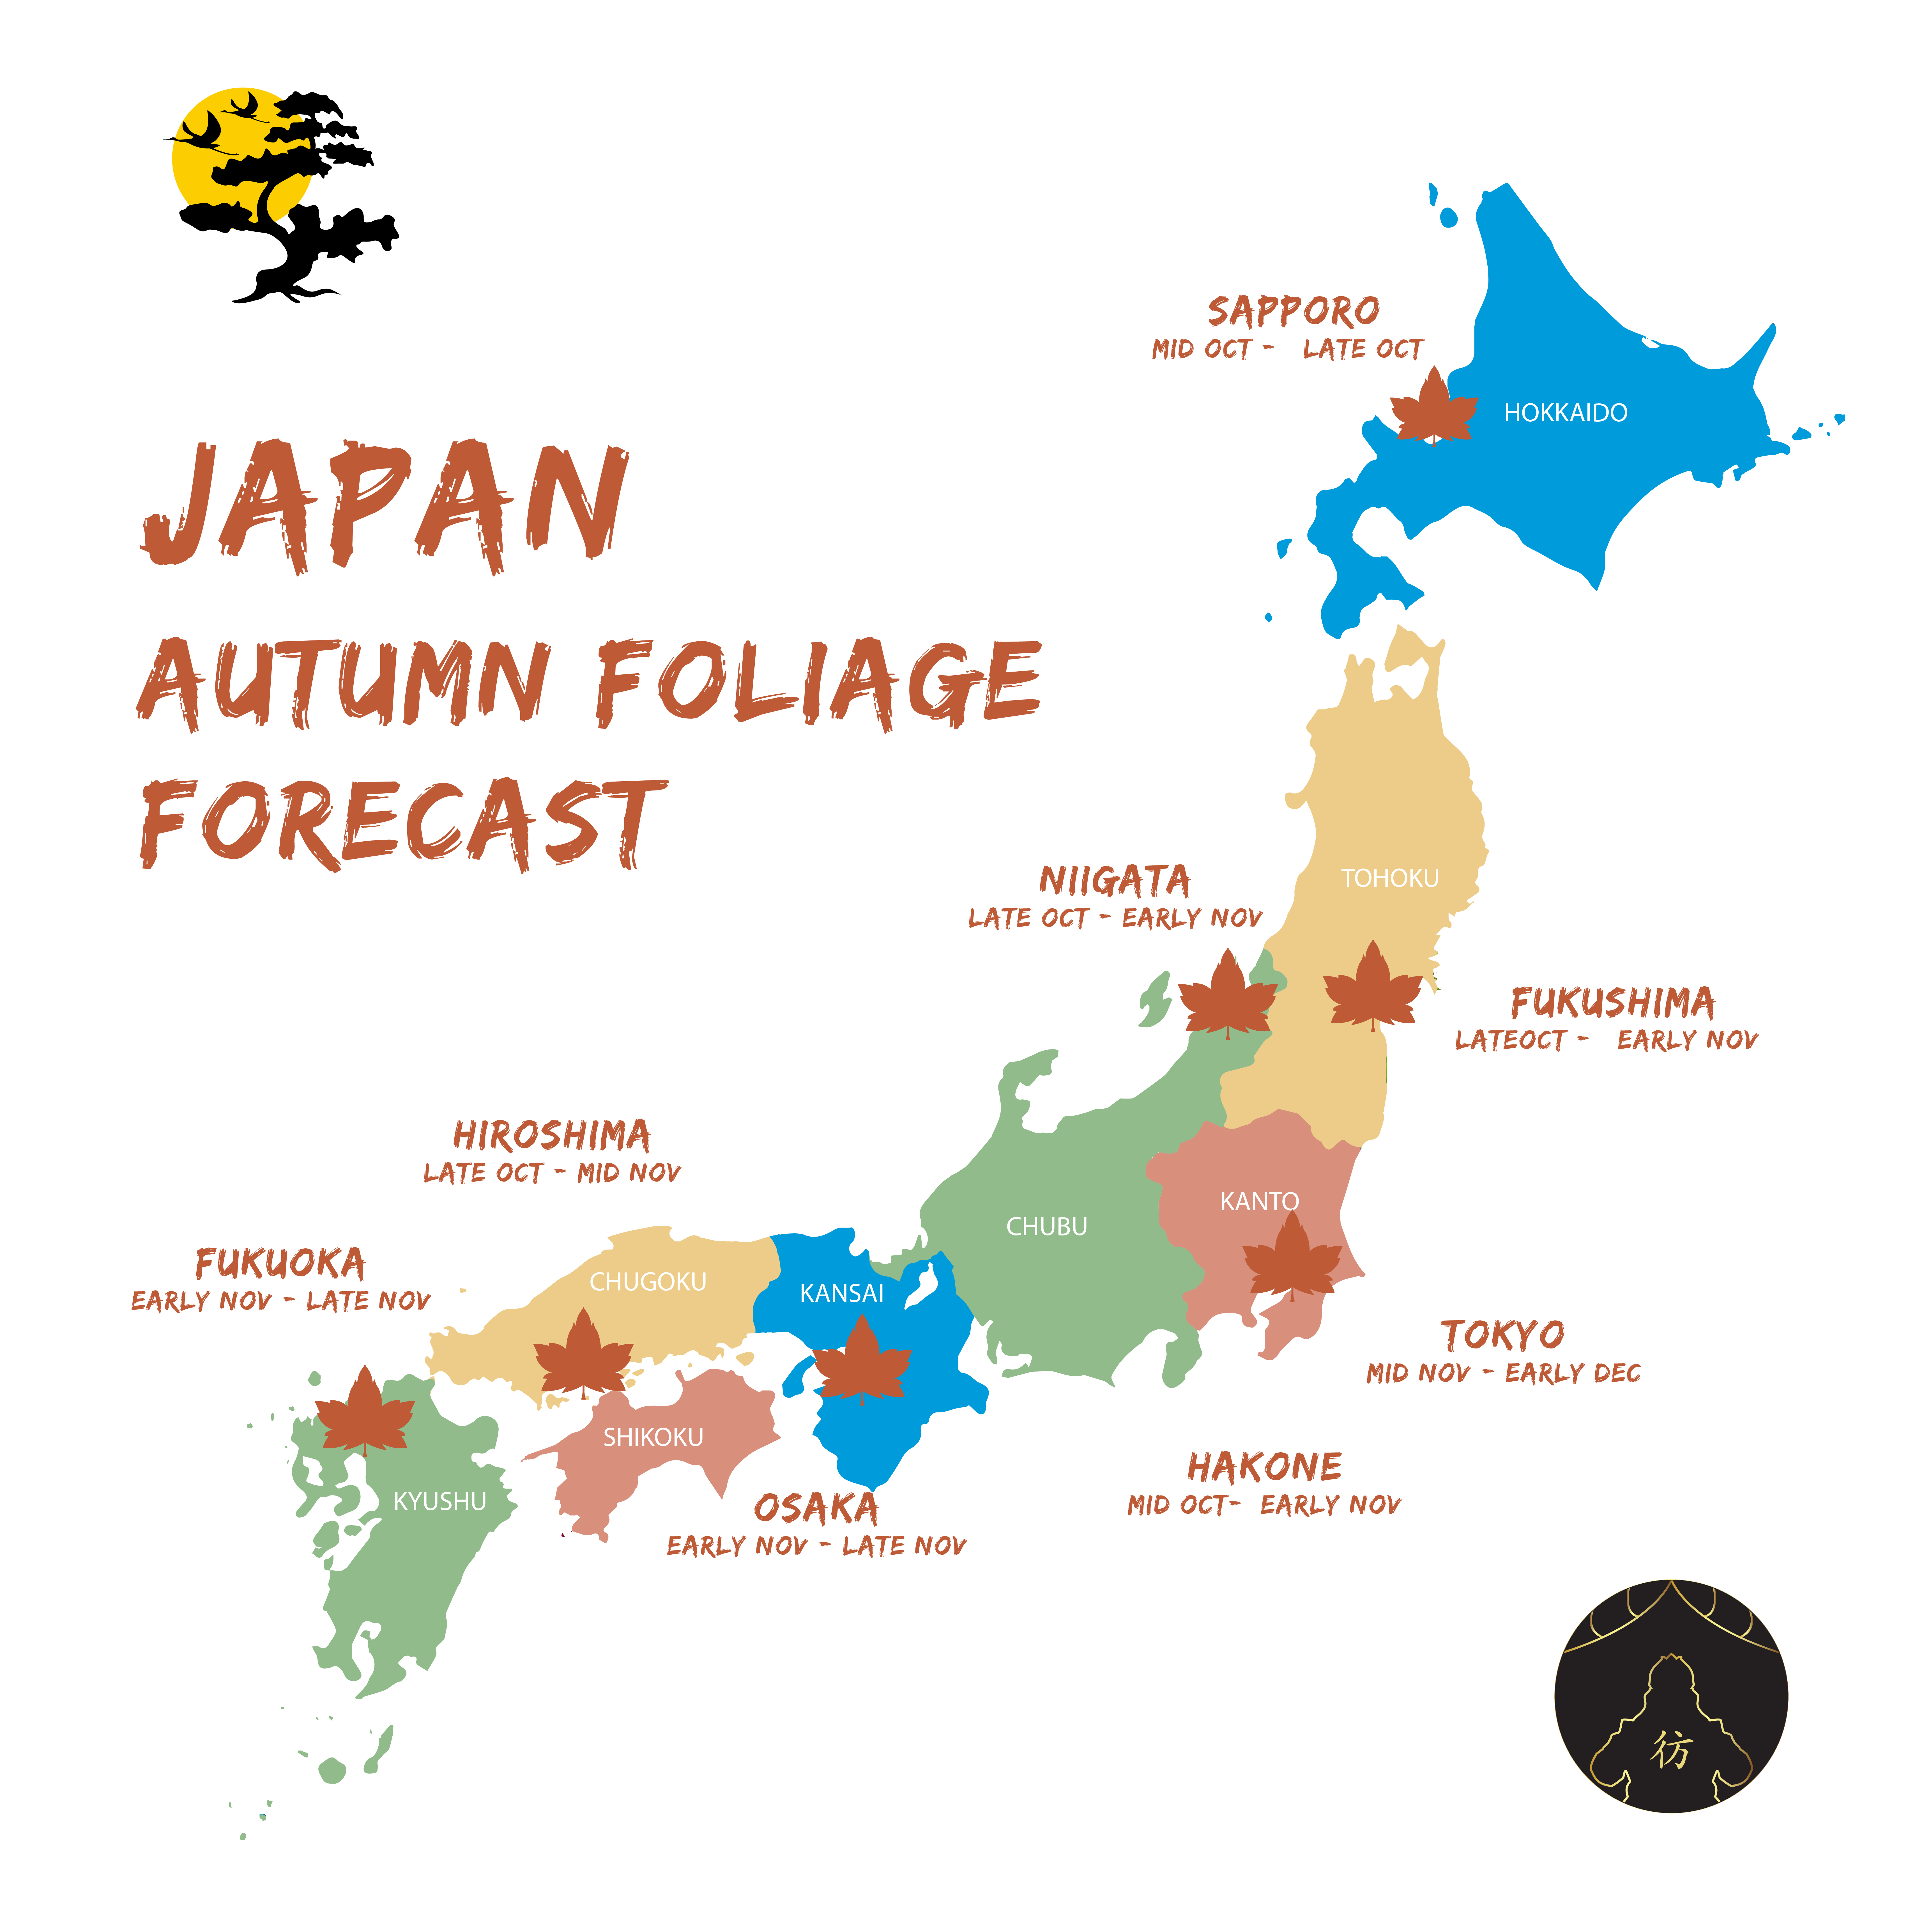 Autumn In Japan The Foliage Forecast And The Best Spots By City